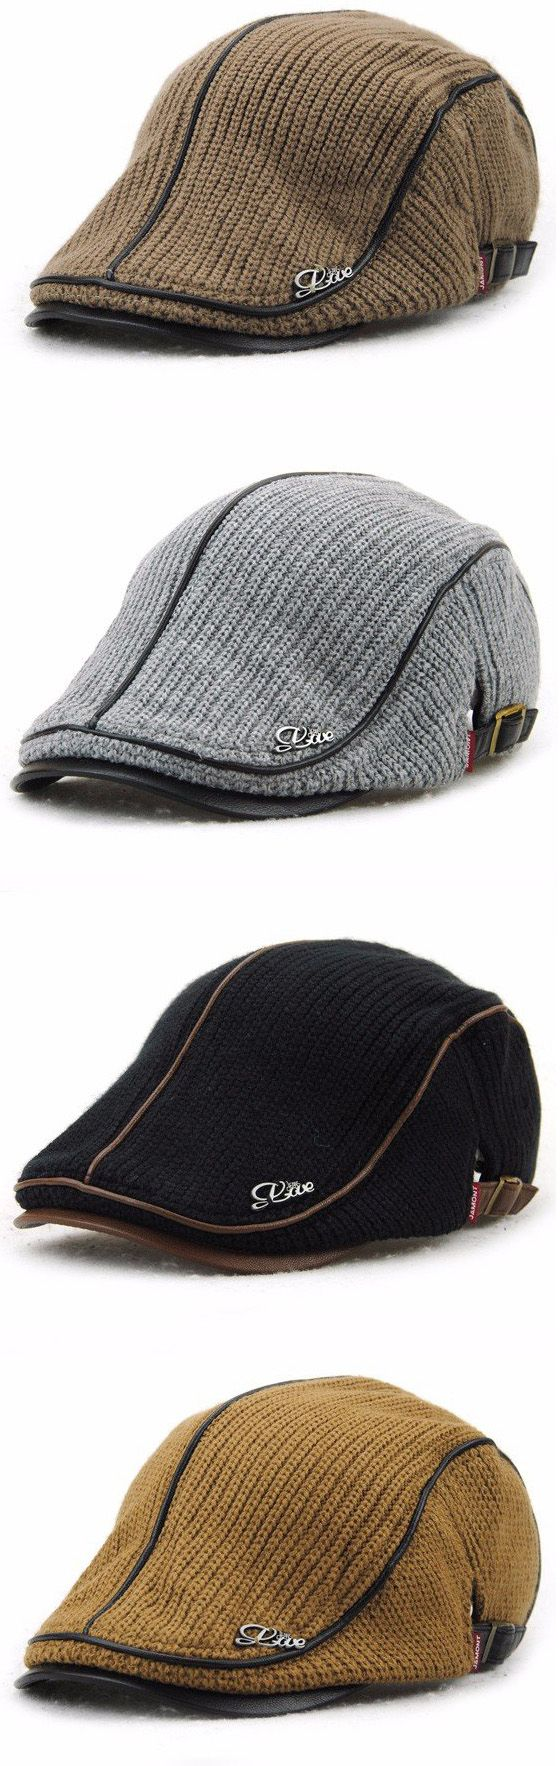 Men Women Knitting Beret Caps Newsboy Buckle Adjustable Casual Outdoors Peaked Hat